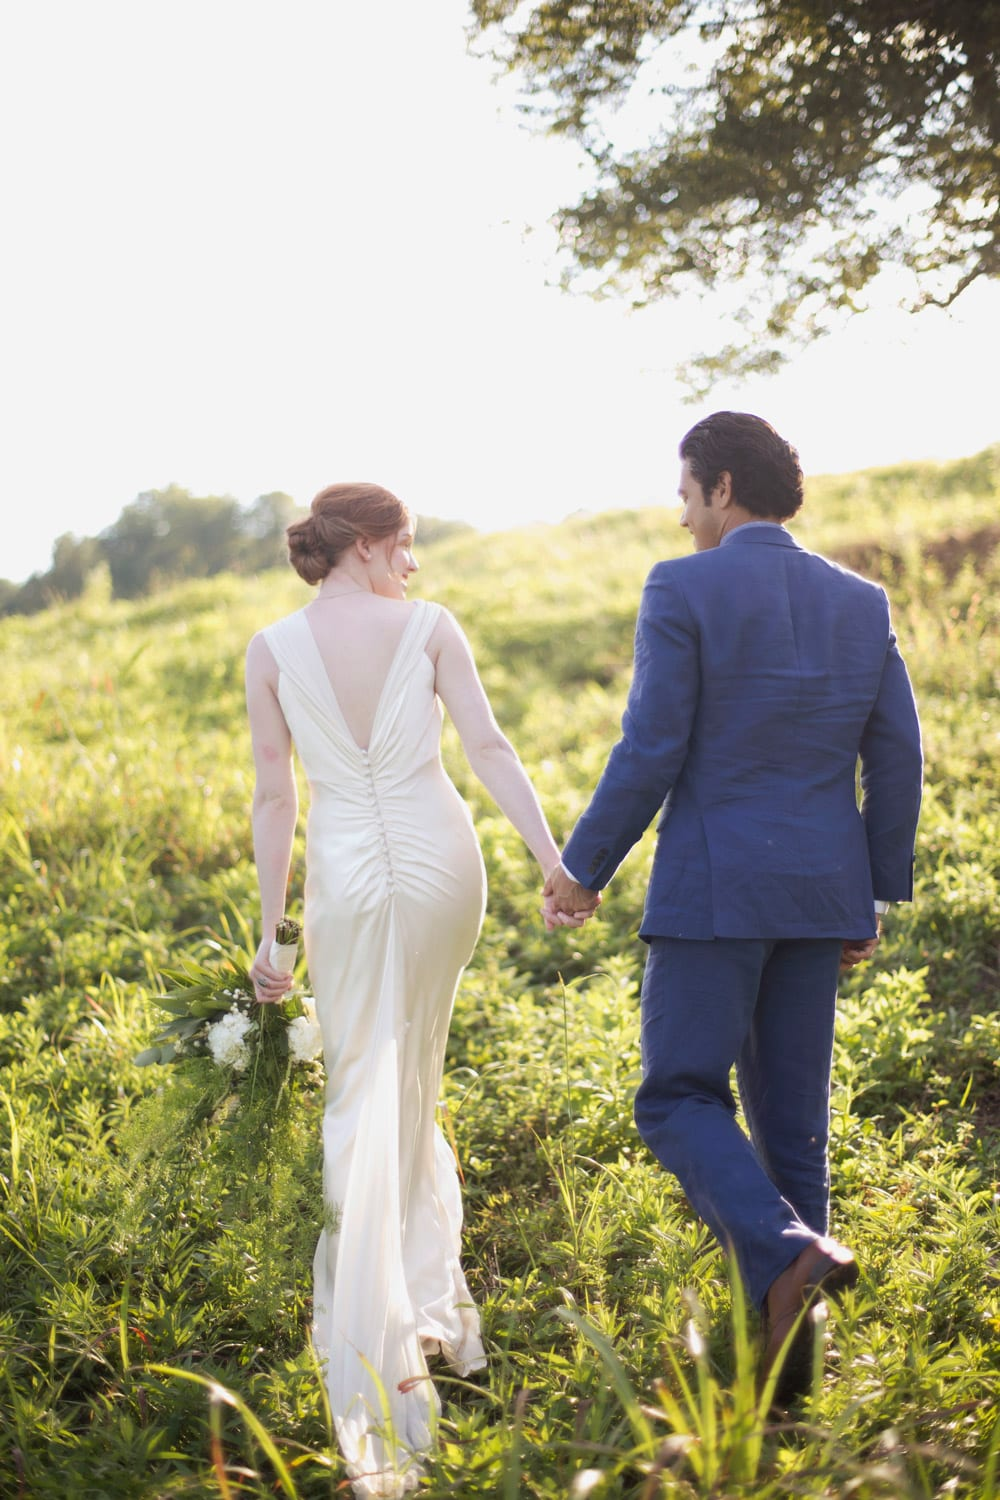 Bride and groom hold hands while walking in pasture